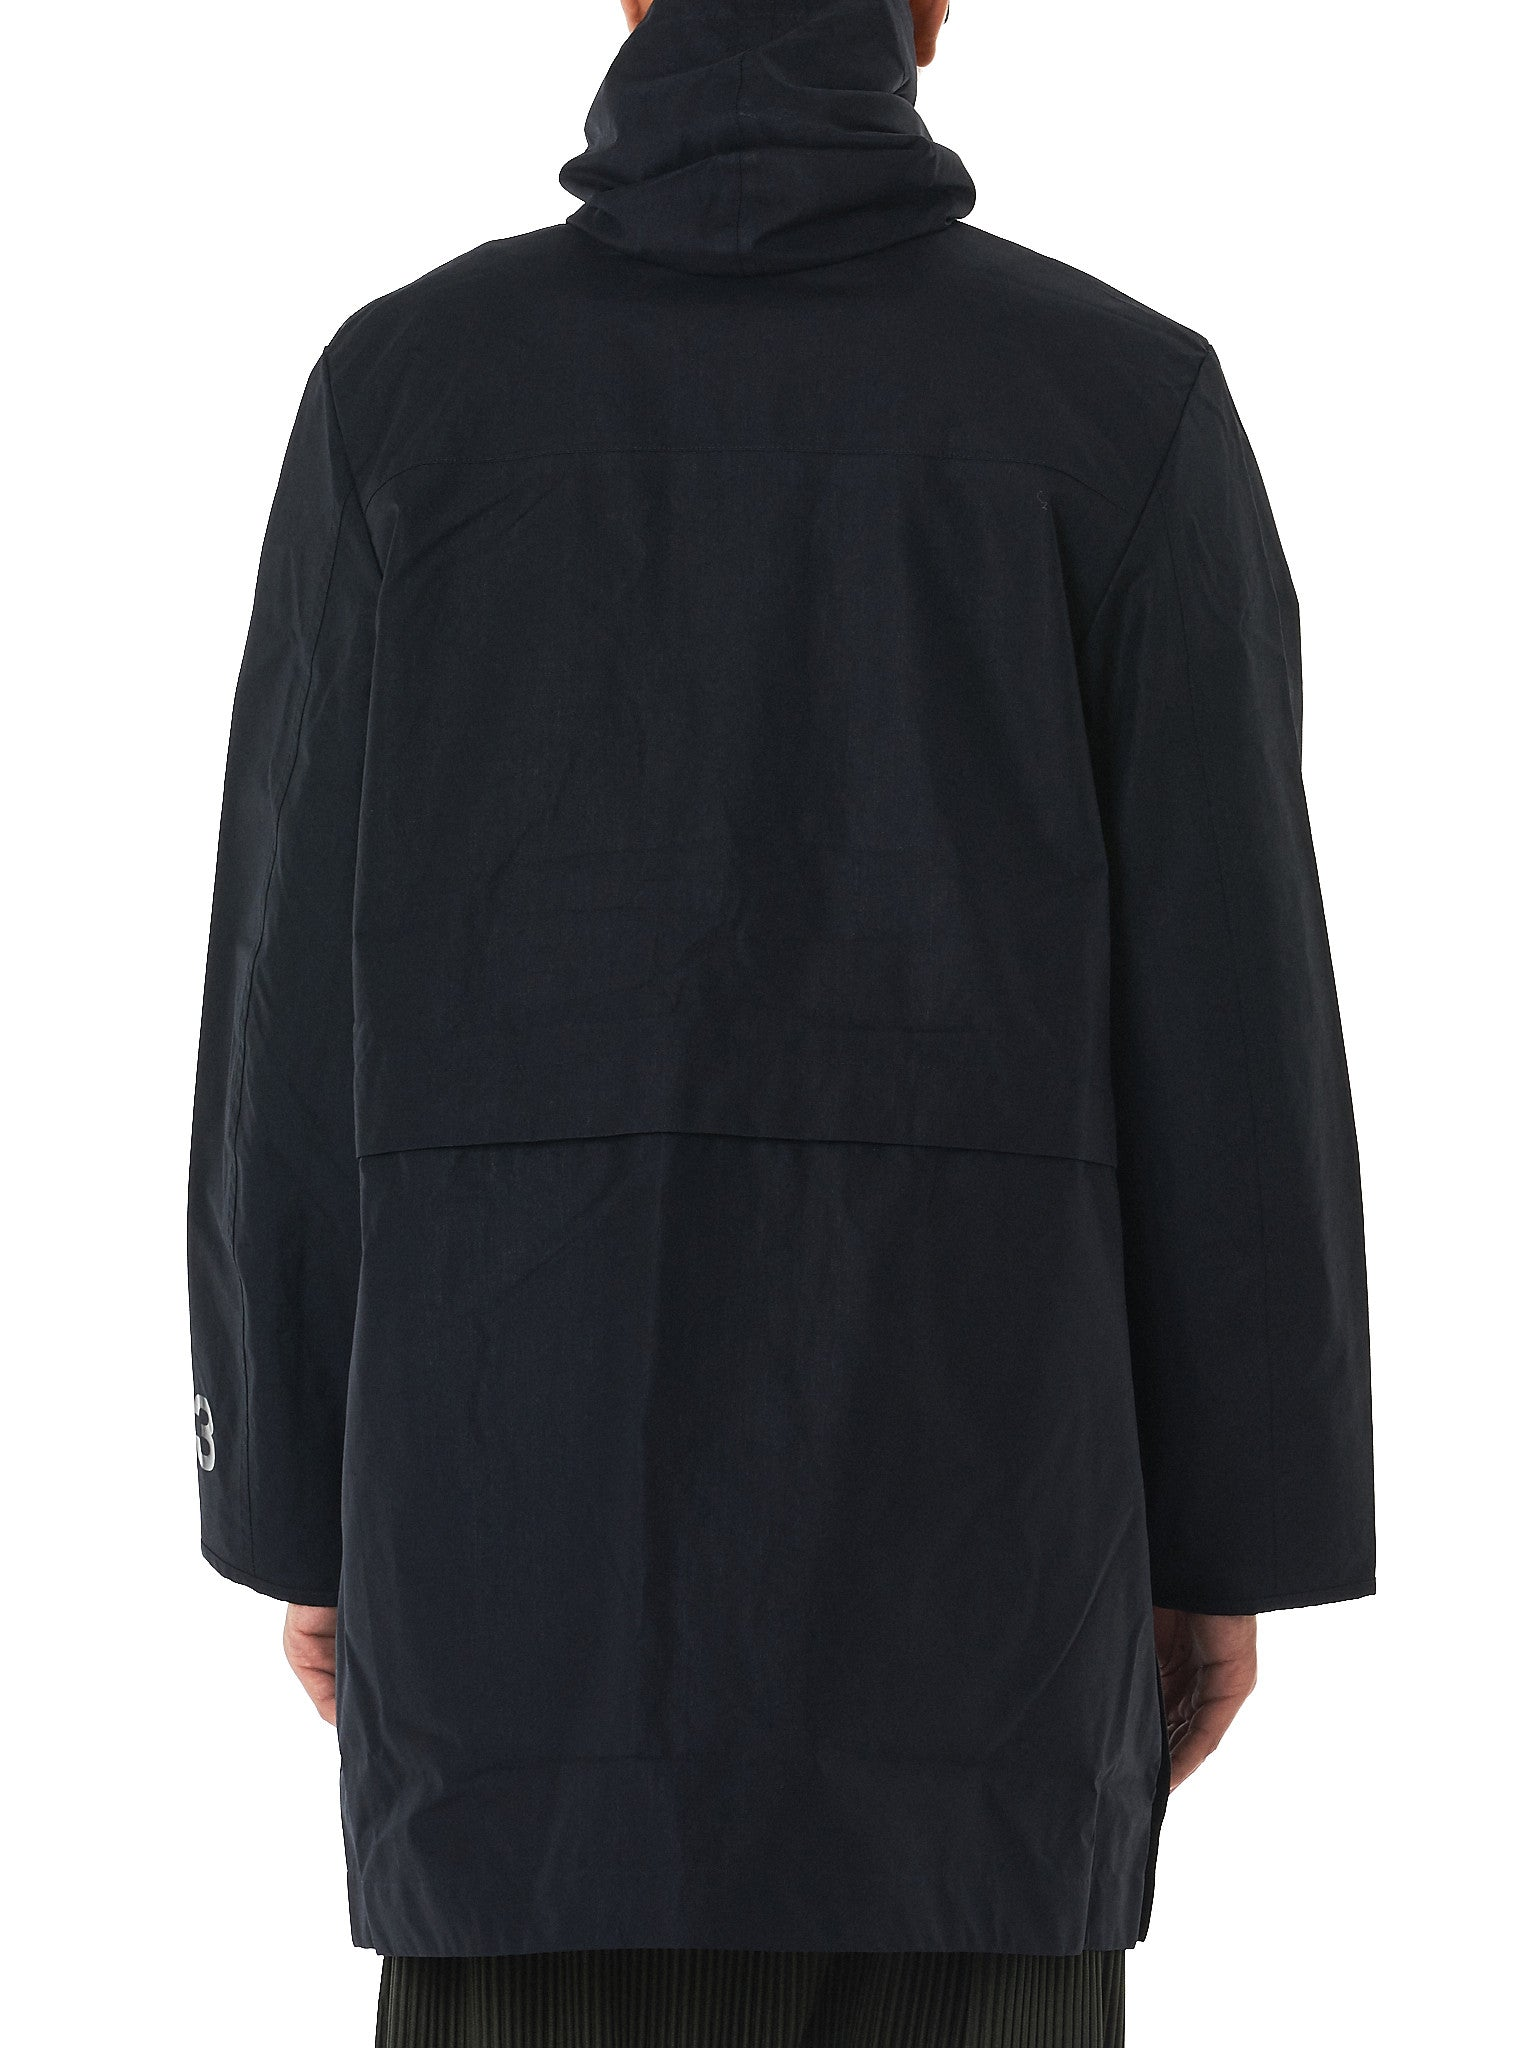 Y-3 - Hlorenzo Back View